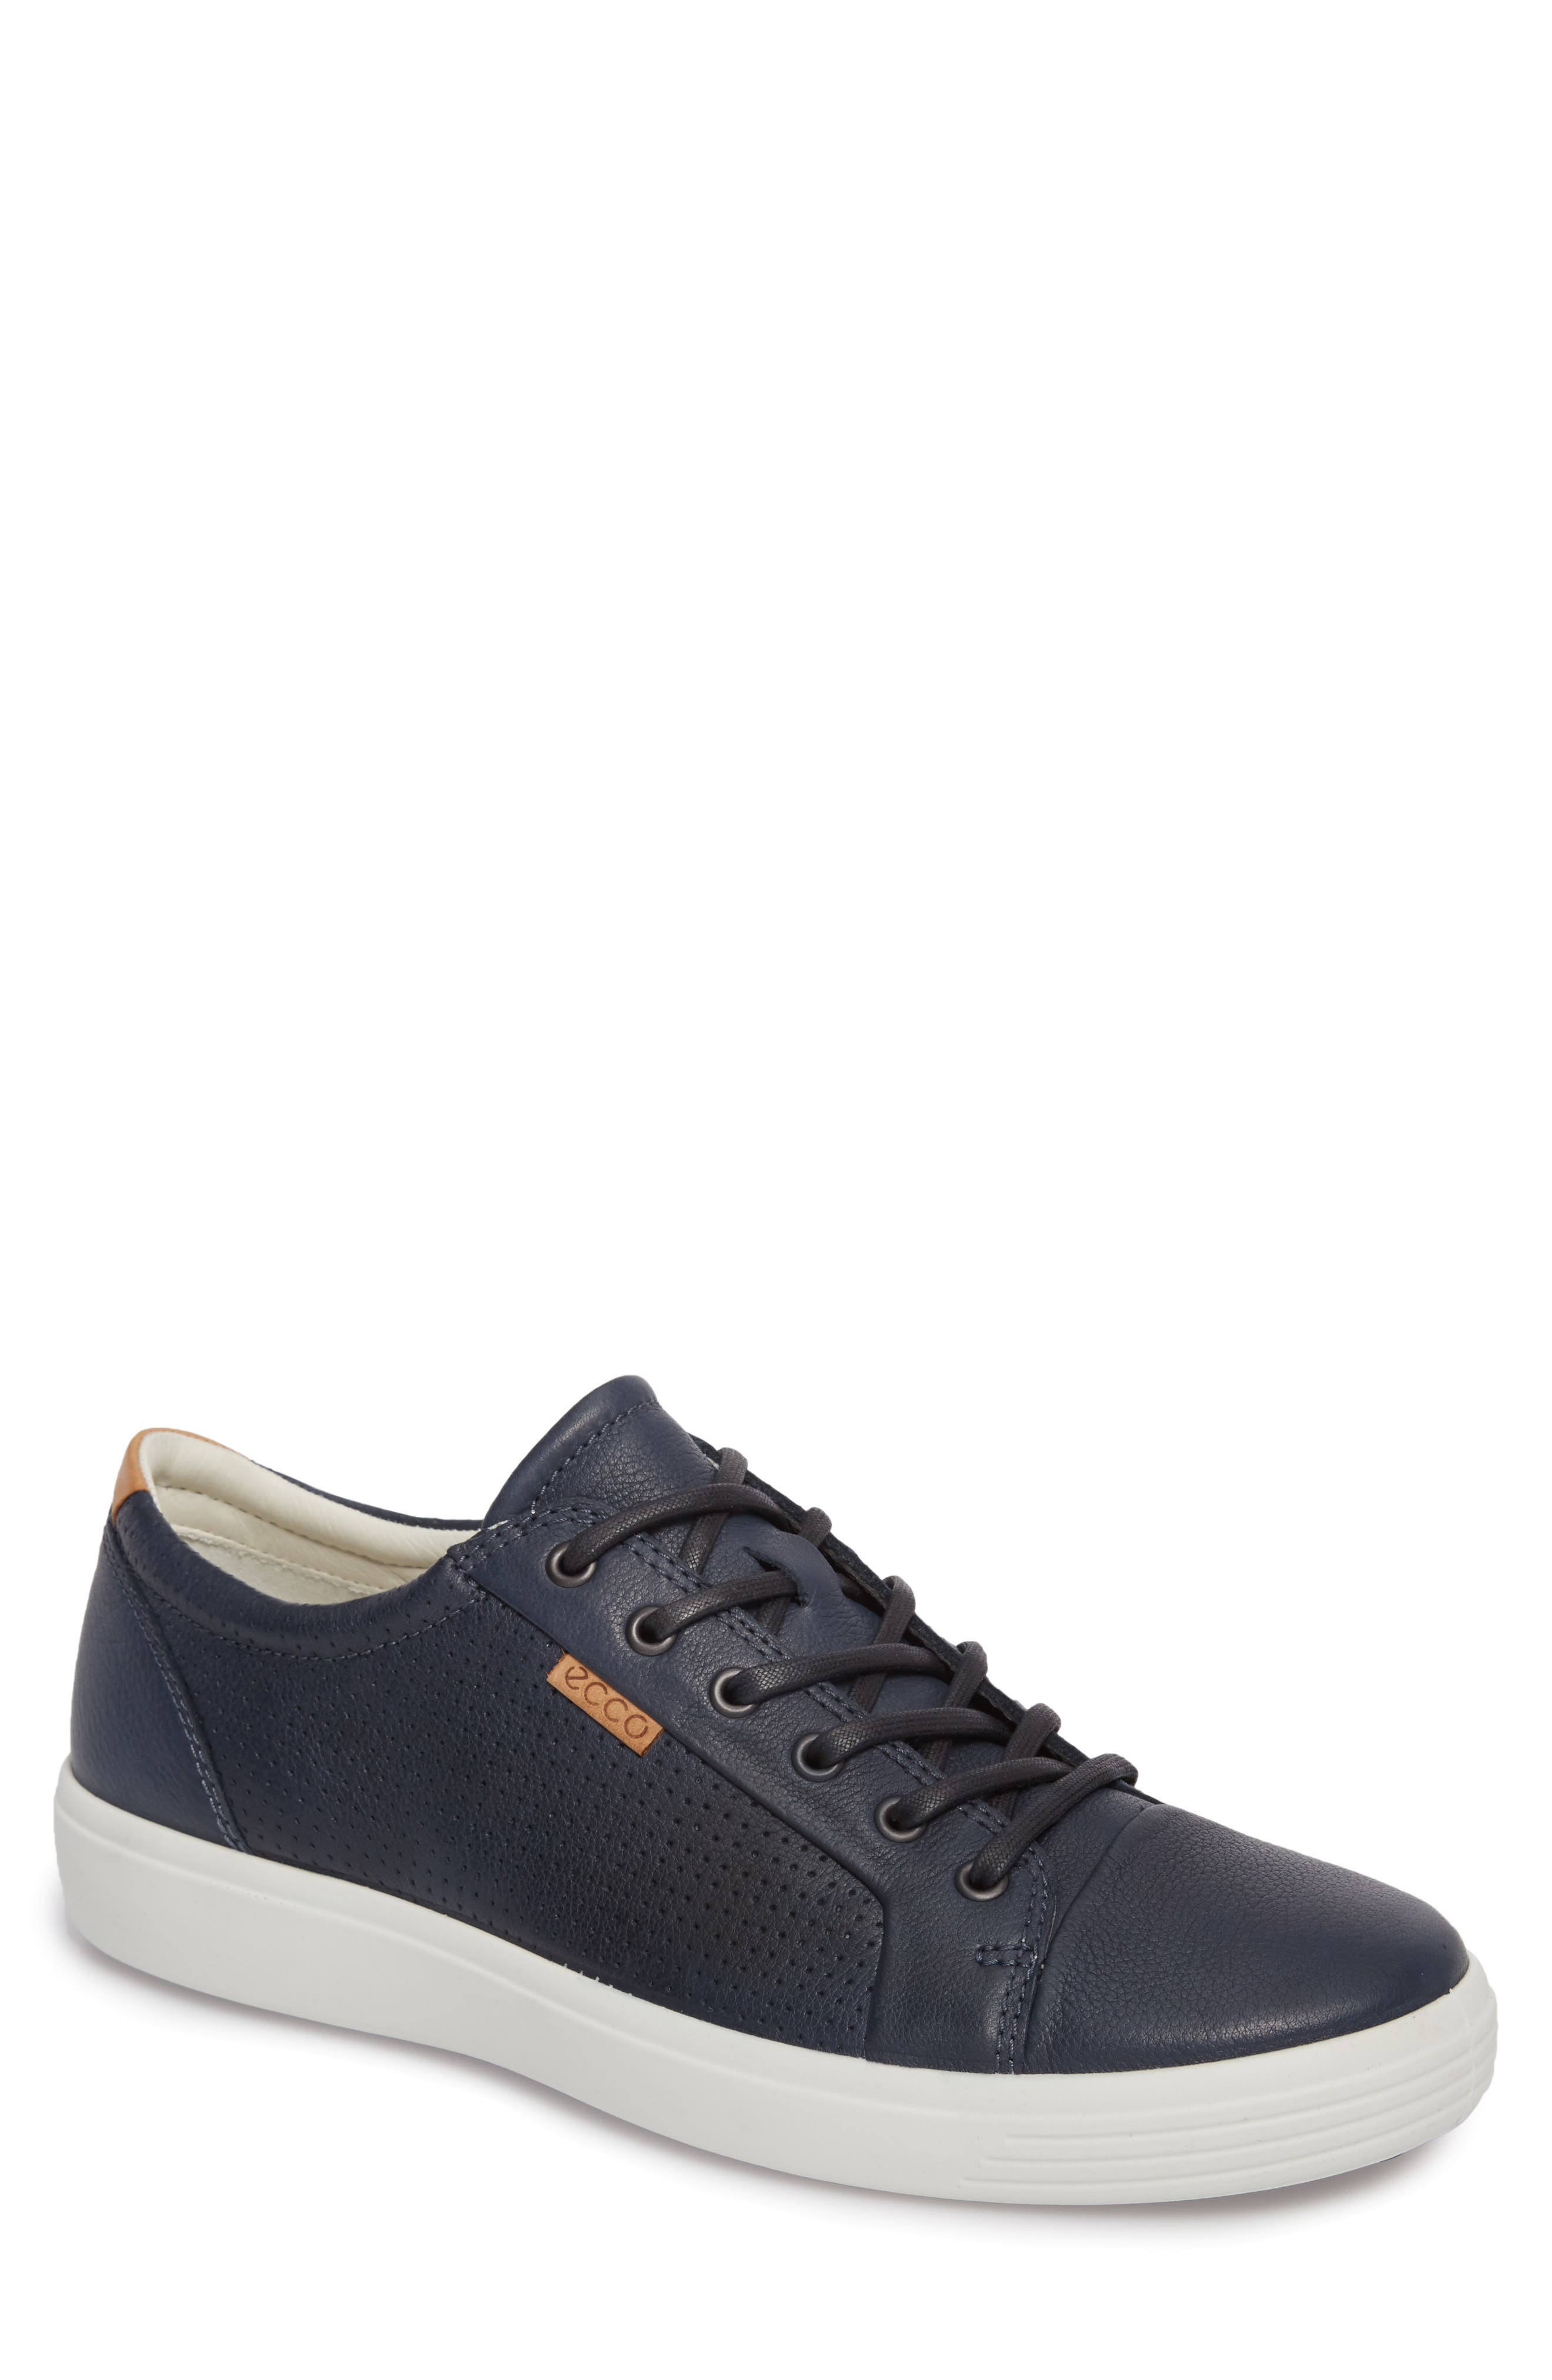 ECCO Soft 7 Perf Sneaker, Main, color, NAVY LEATHER